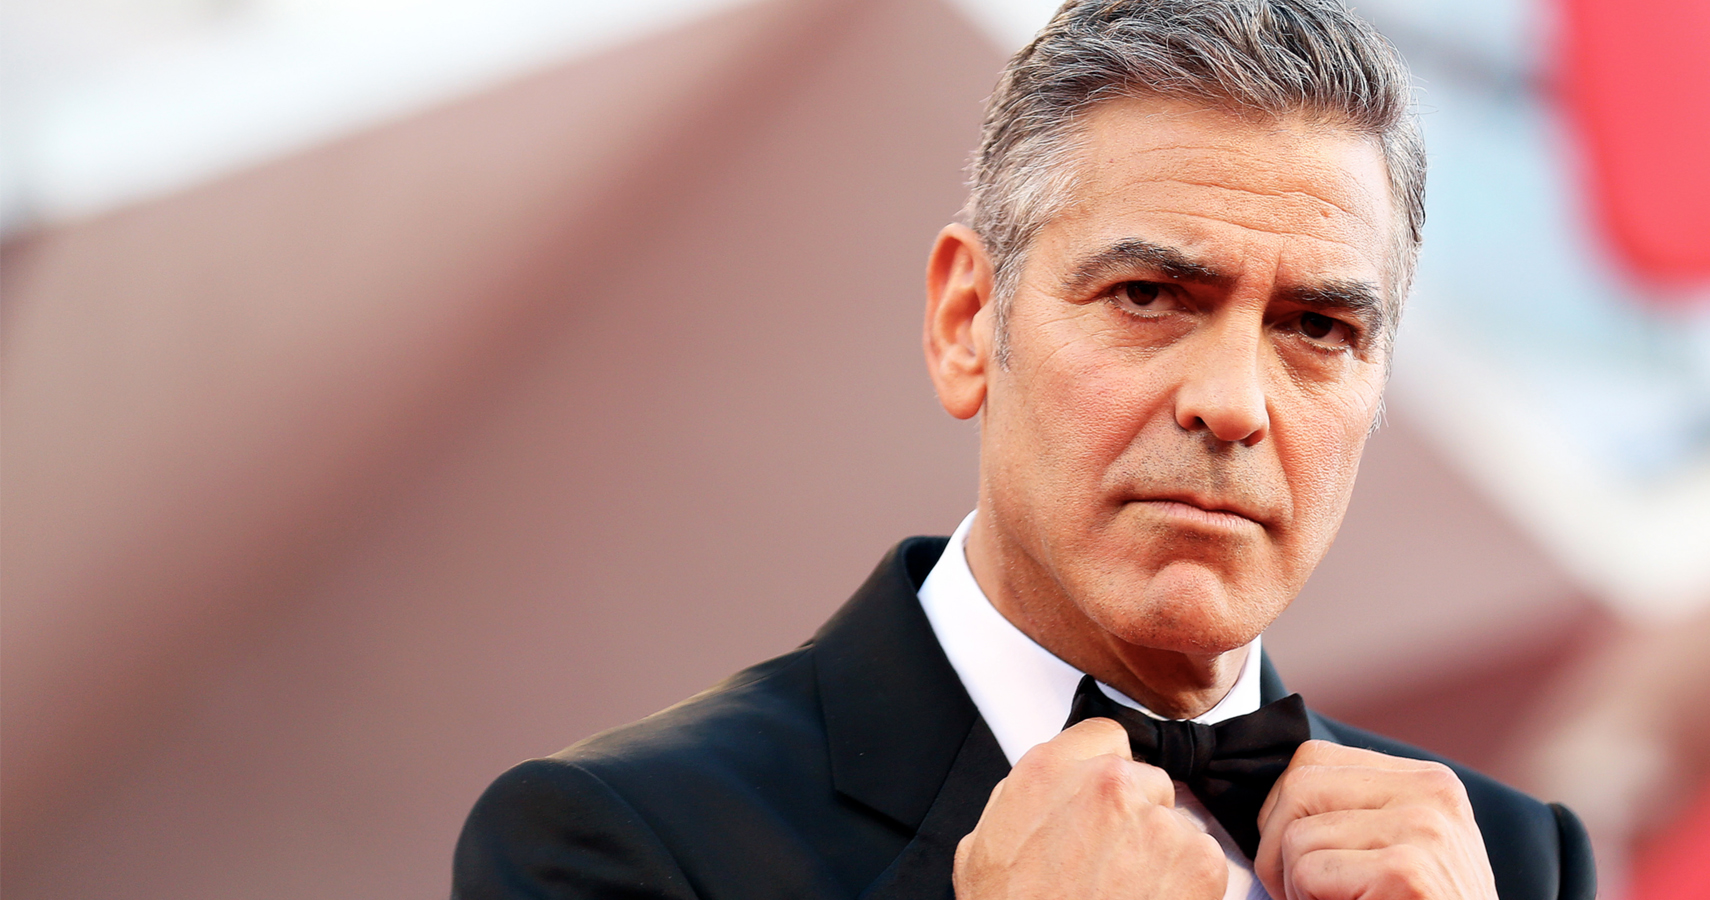 Is George Clooney The Most Handsome Man Alive?